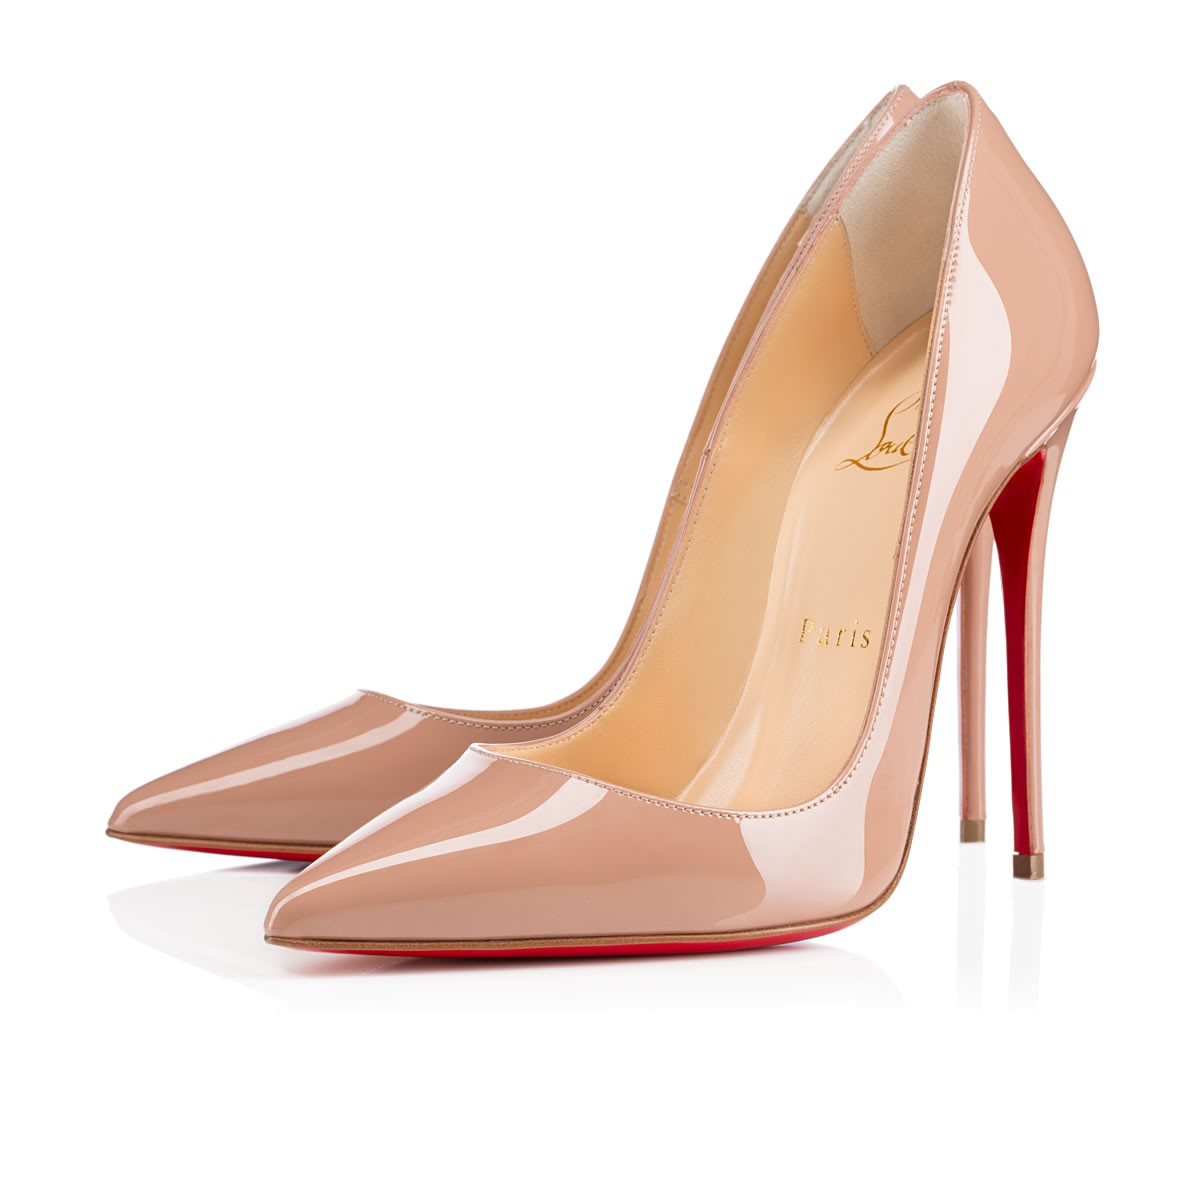 a282b5a1e Now onto my brief review of the infamous Christian Louboutin 'So Kate' and 'Pigalle  Follies' heels.